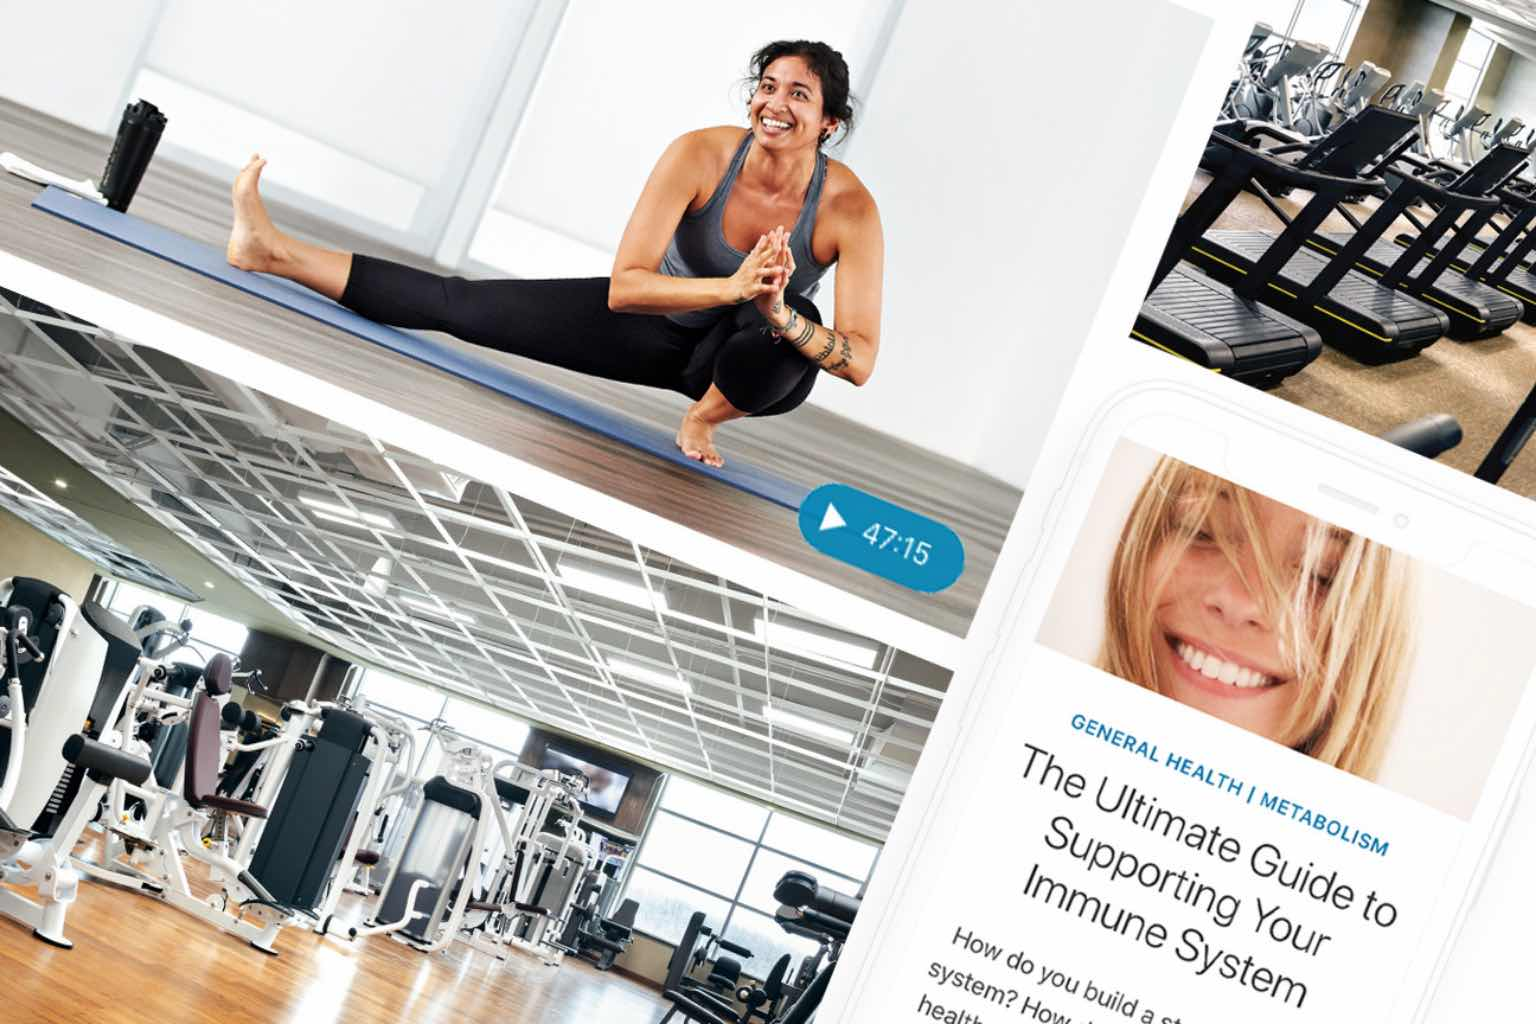 Multiple phone screens with on-demand and at-home workouts from Life Time.